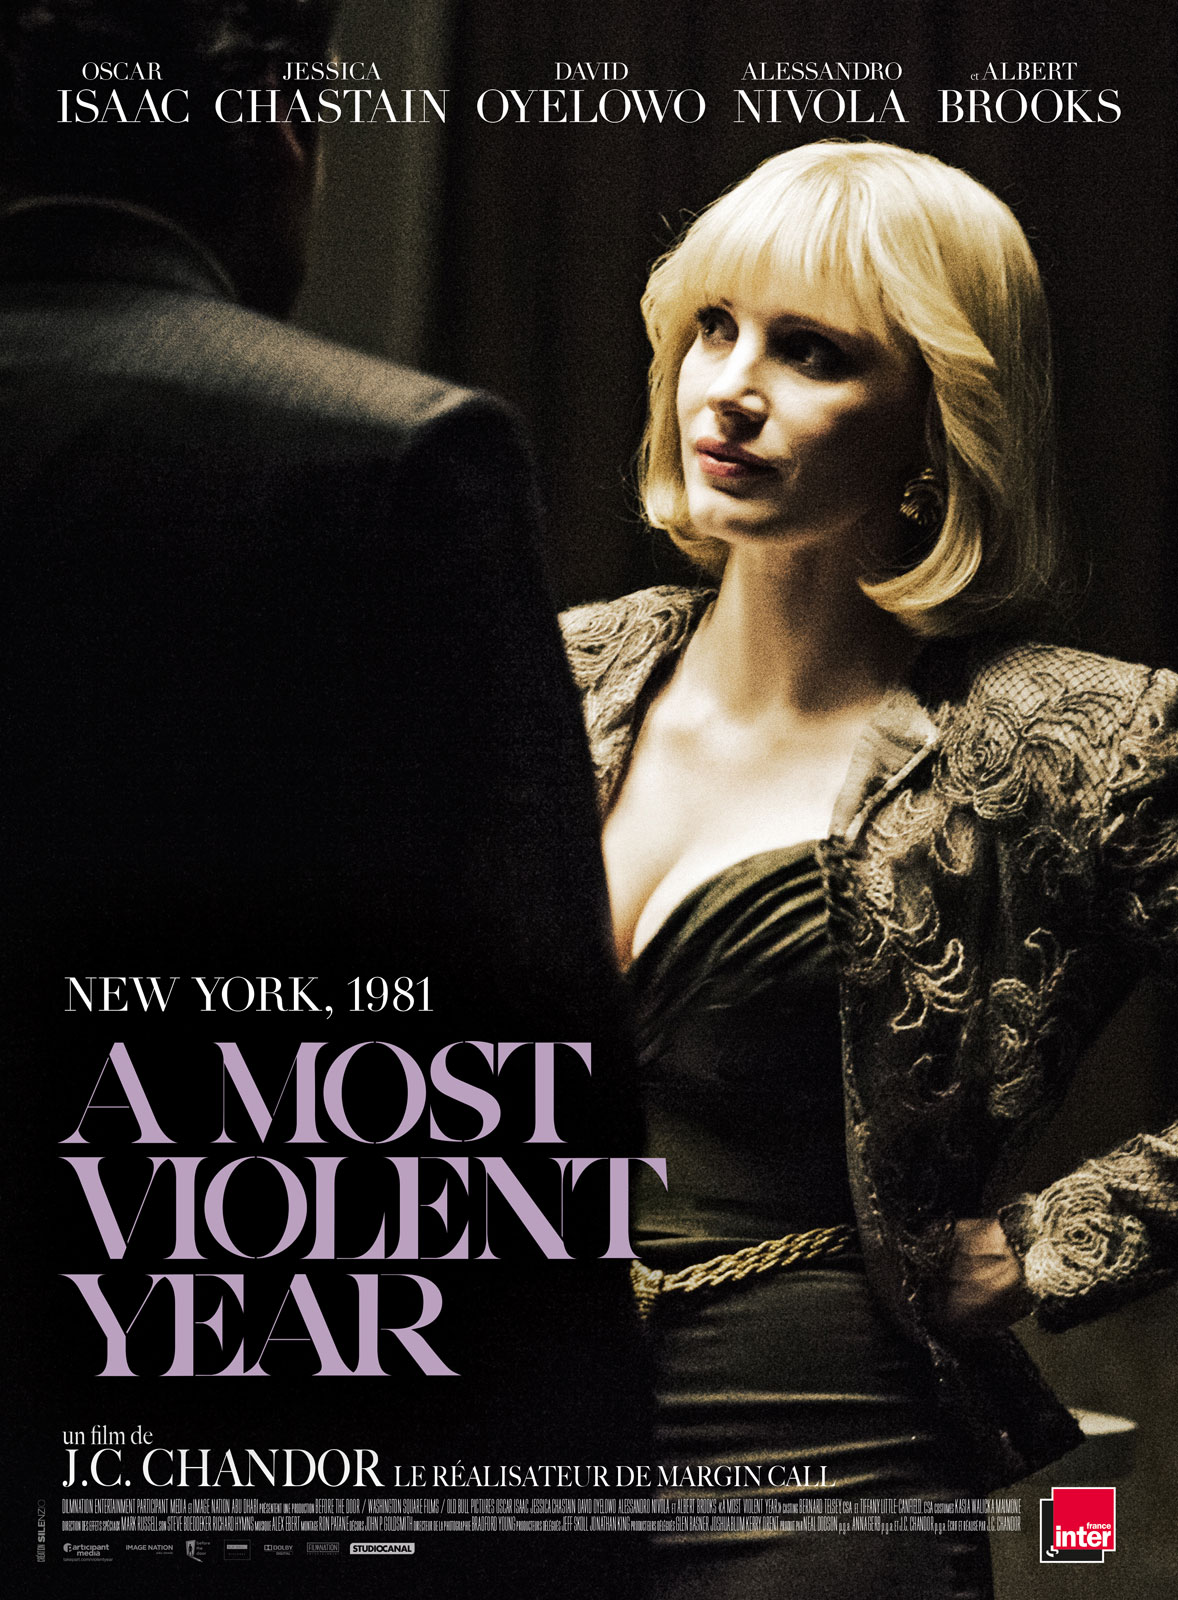 A MOST VIOLENT YEAR-Official Poster XLG-12DEZEMBRO2014-03